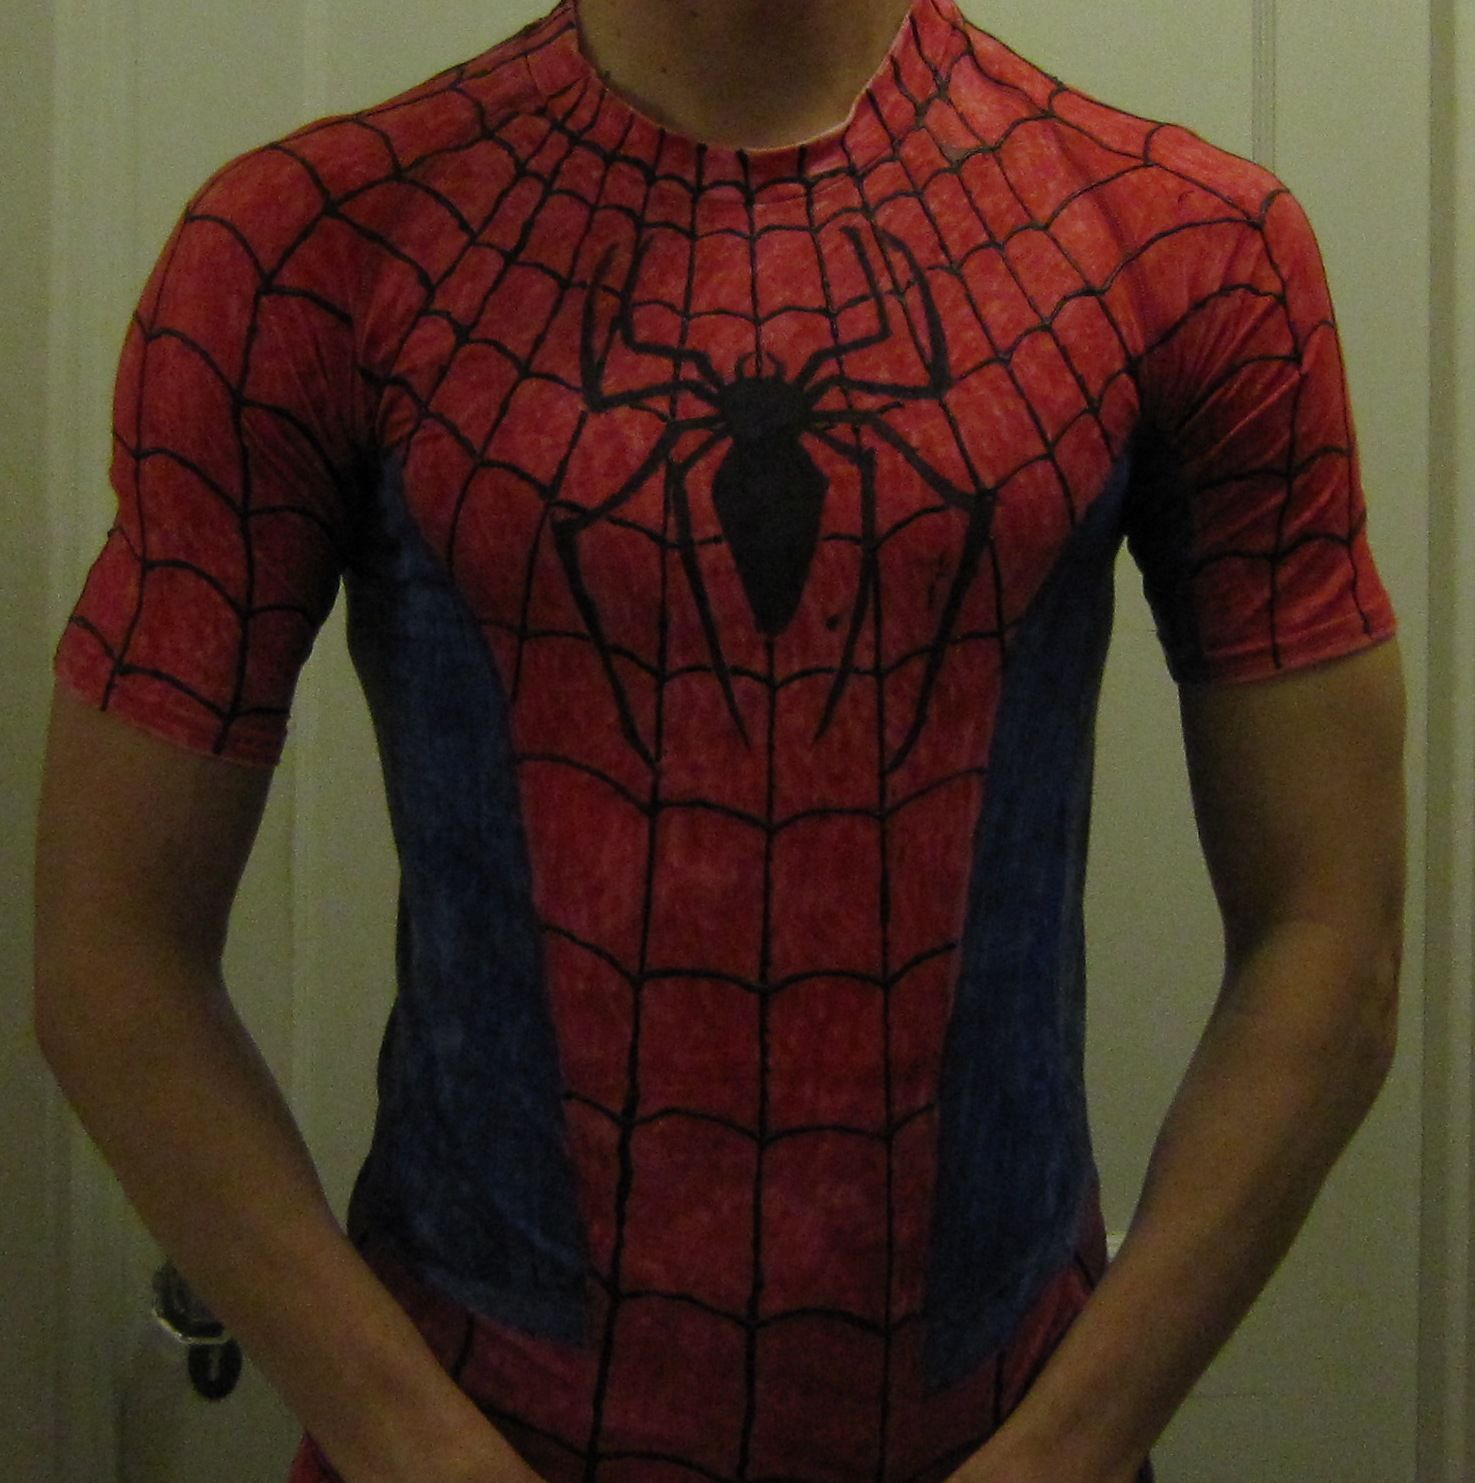 b98318fdba025 Chuck Does Art: DIY (do it yourself) Costume: Spider-Man | Costumes ...